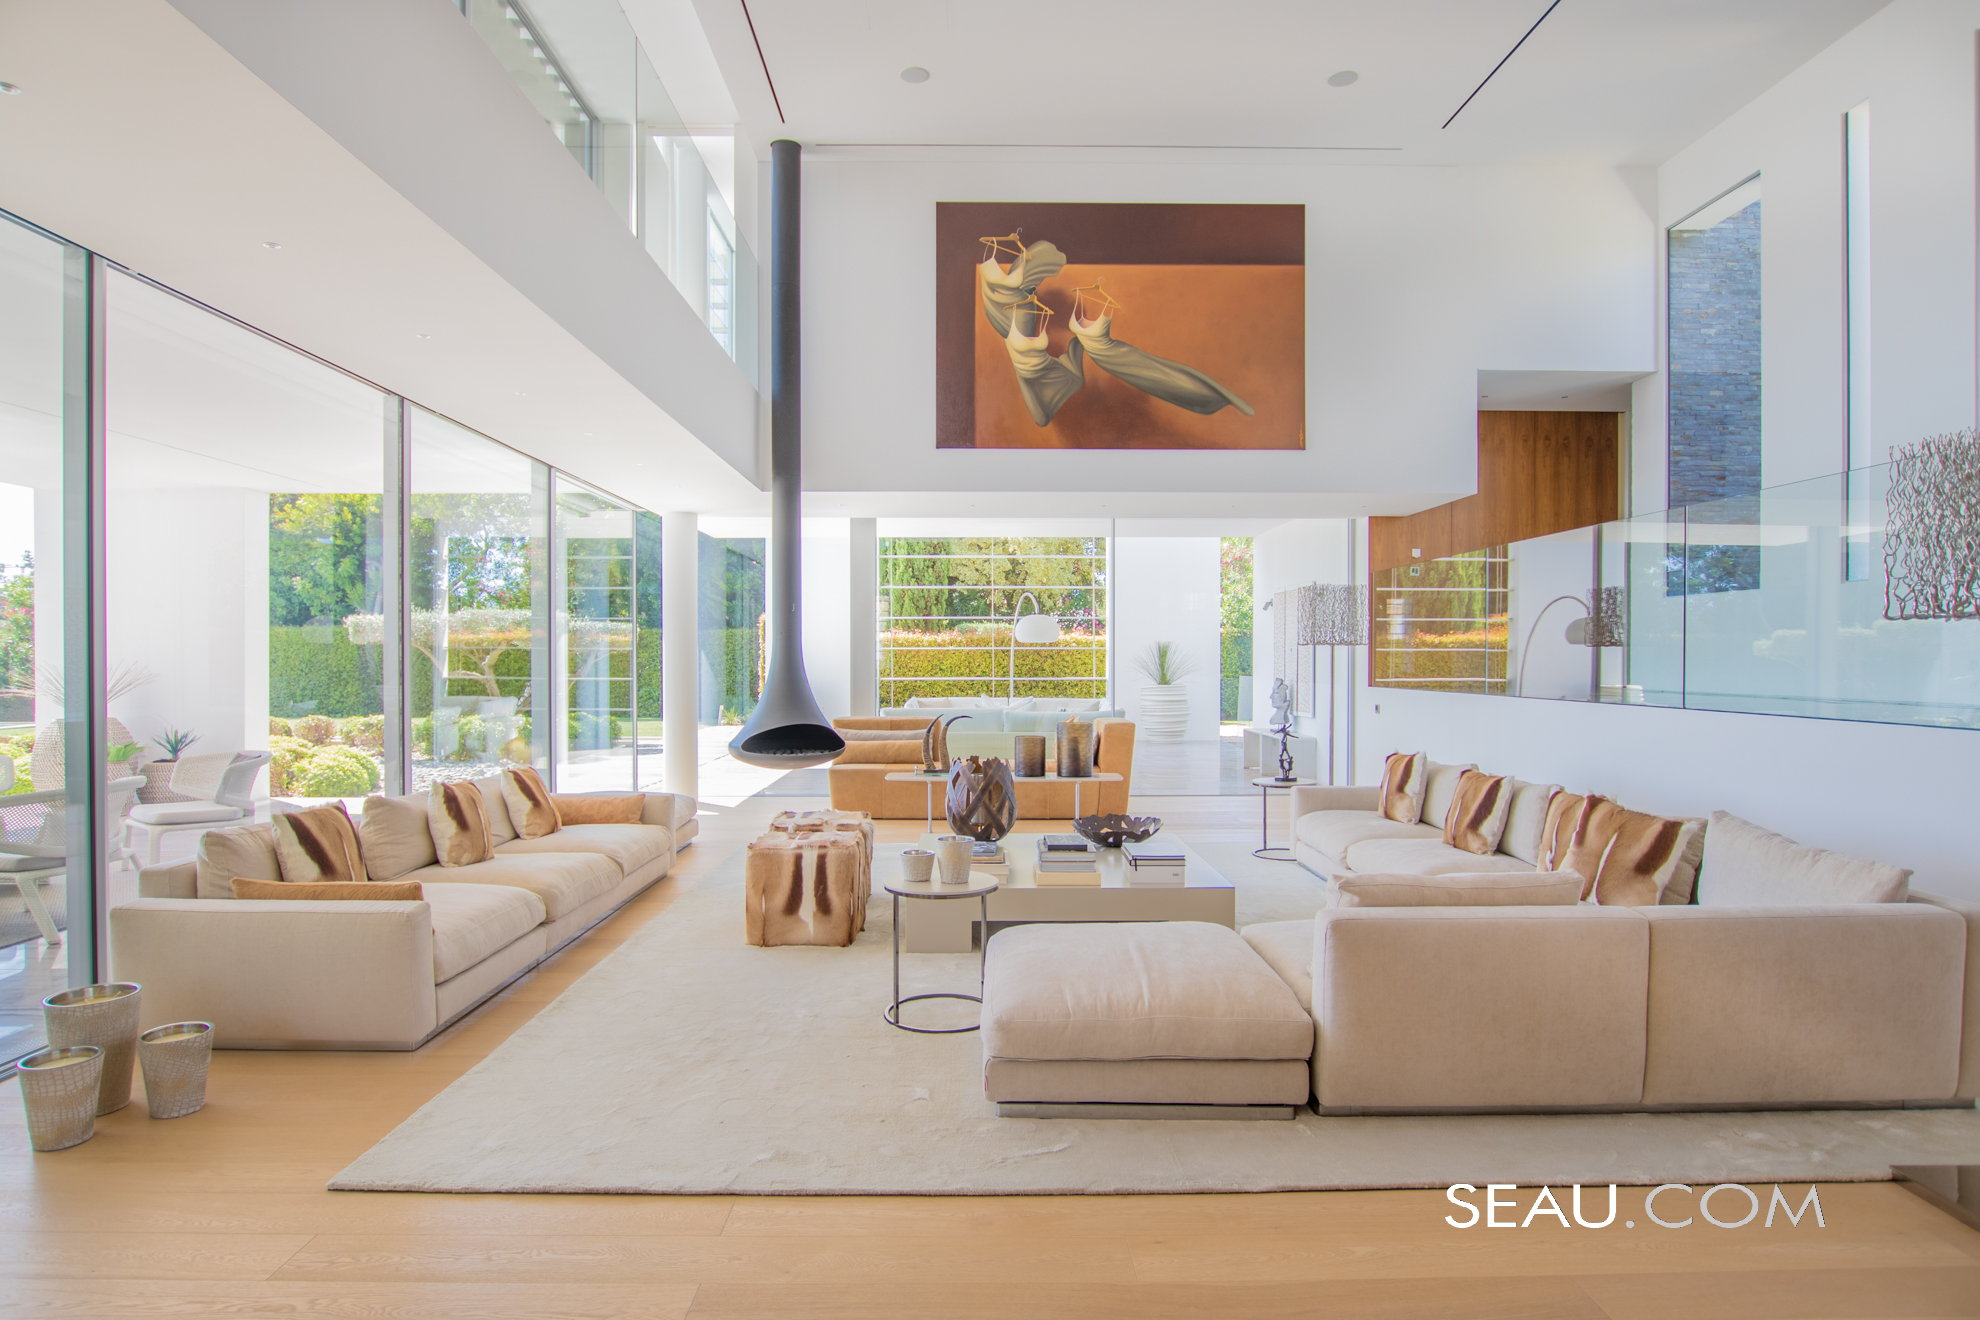 The main living room with double height ceiling, has plenty of space to entertain, and a cozy contemporary feeling reinforced by a metal suspended fireplace. .